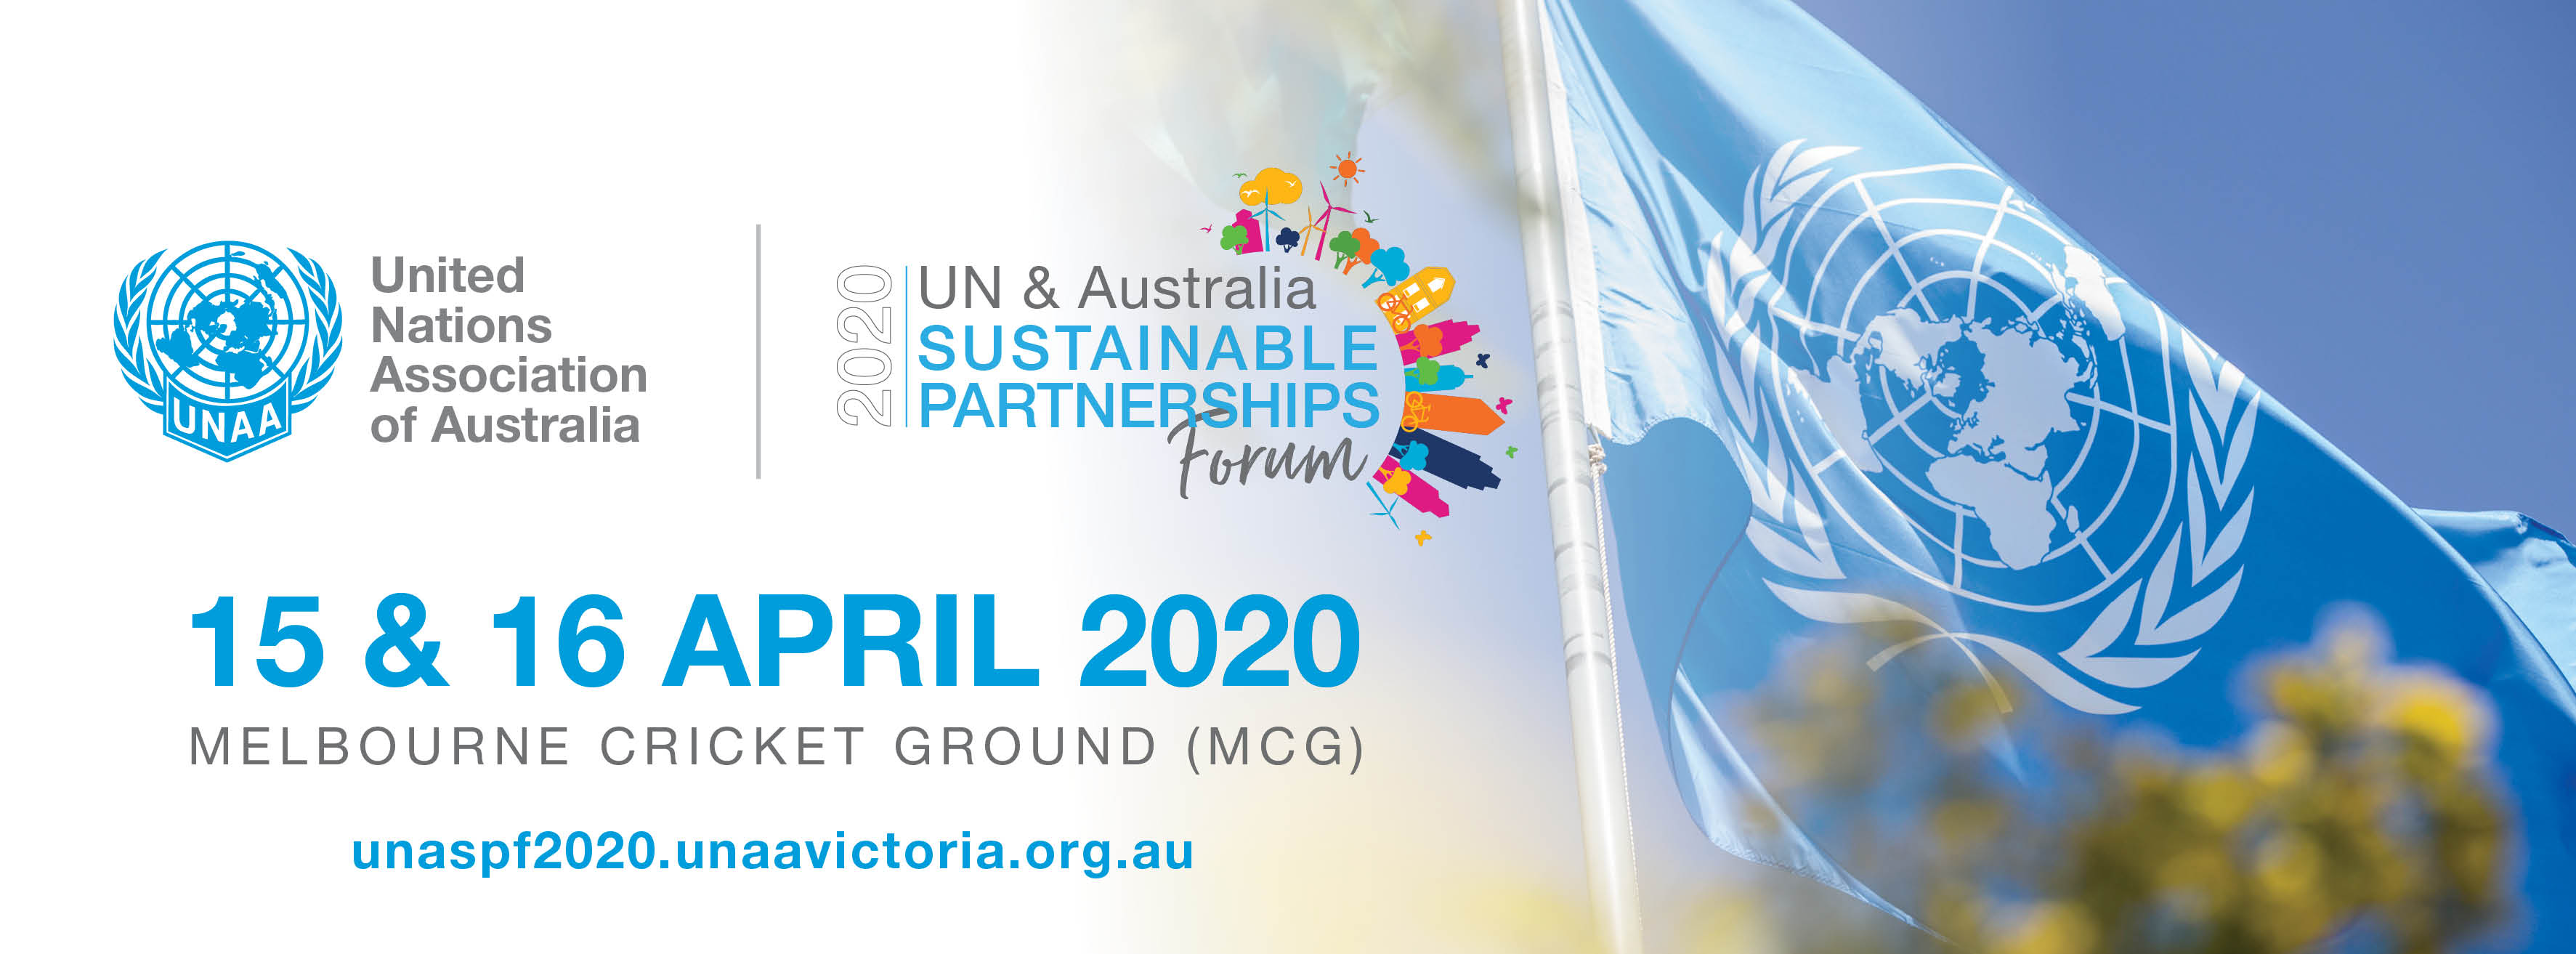 2020 UN & Australia Sustainable Partnerships Forum